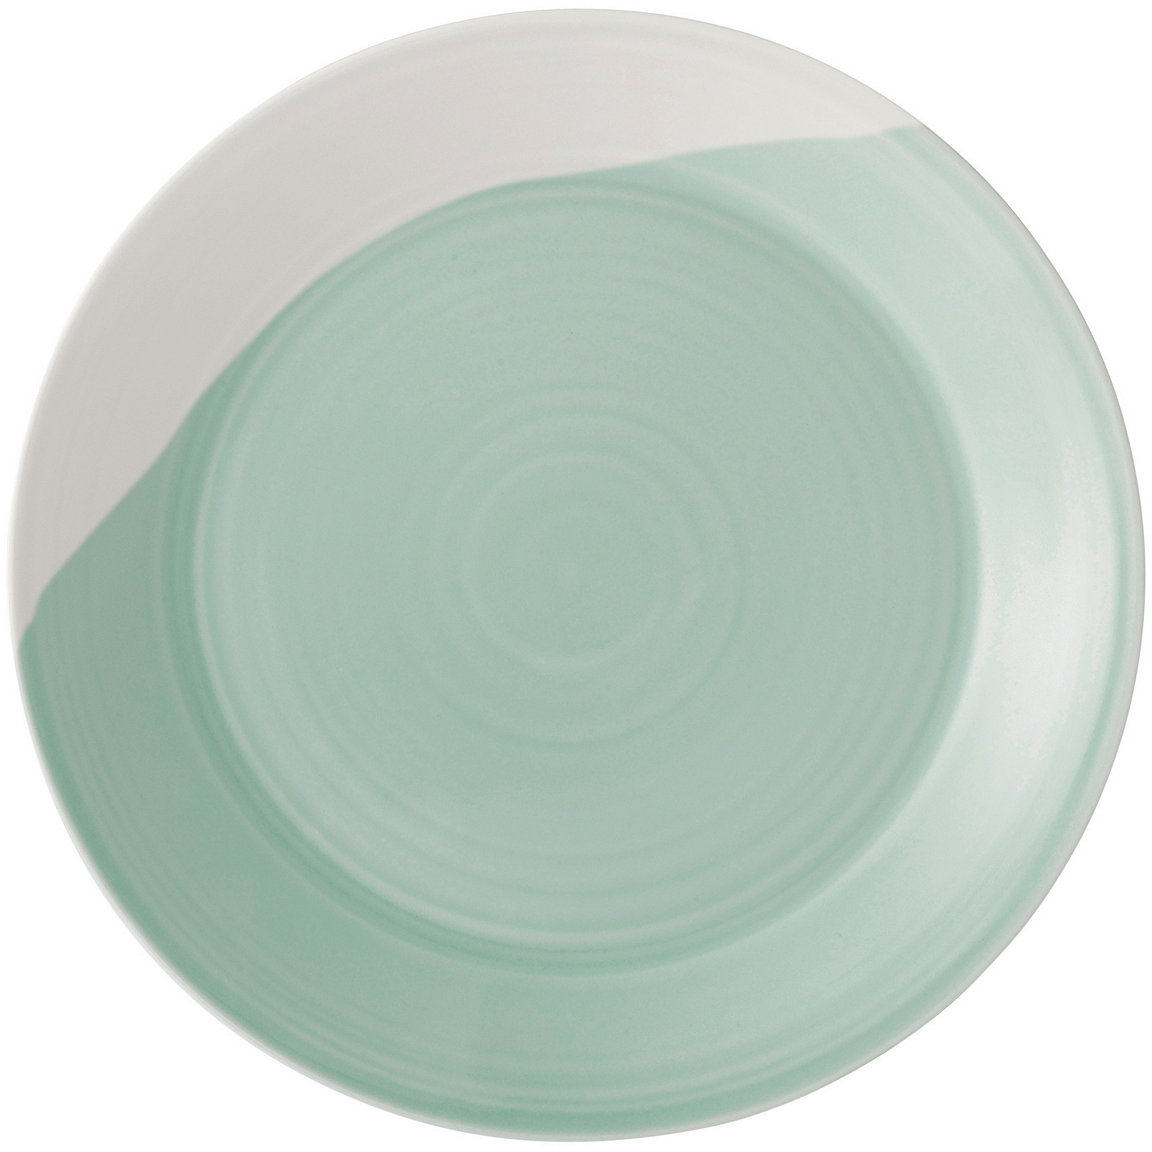 Royal Doulton Dinnerware, 1815 Green Salad Plate - Dinnerware - Dining & Entertaining - Macy's